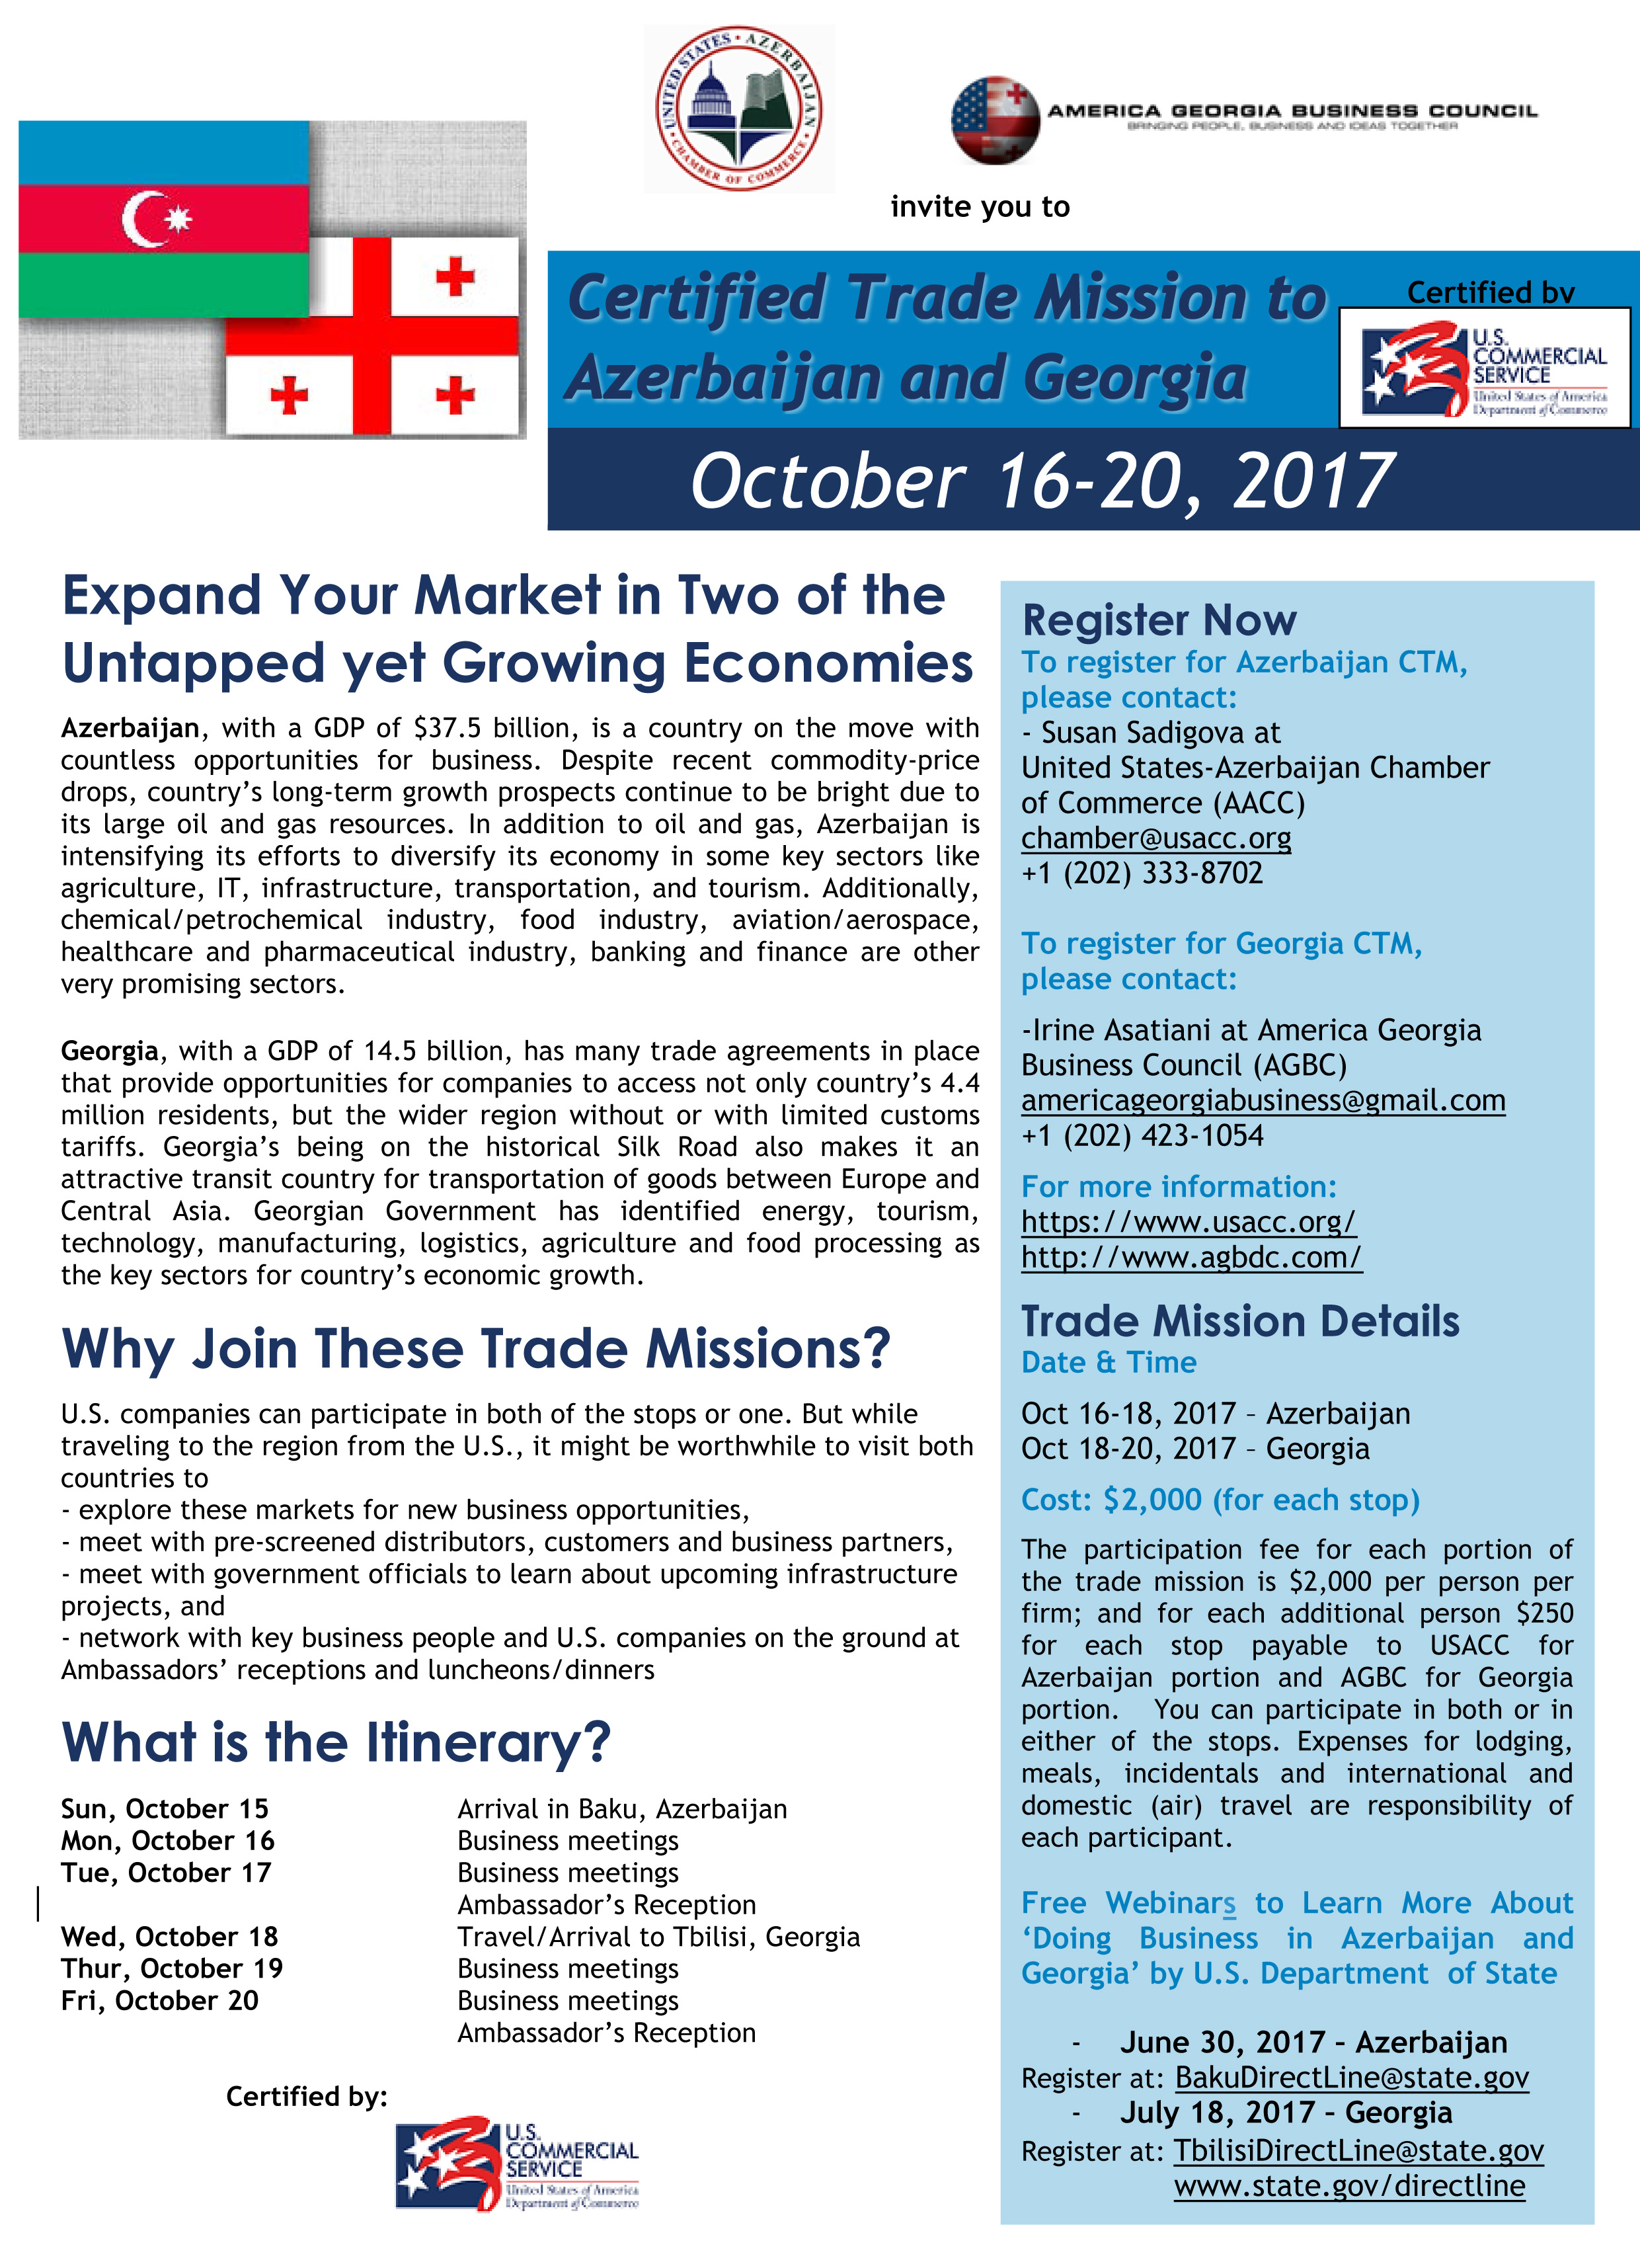 Azerbaijan and Georgia Trade Mission Flyer October 2017 (3).jpg